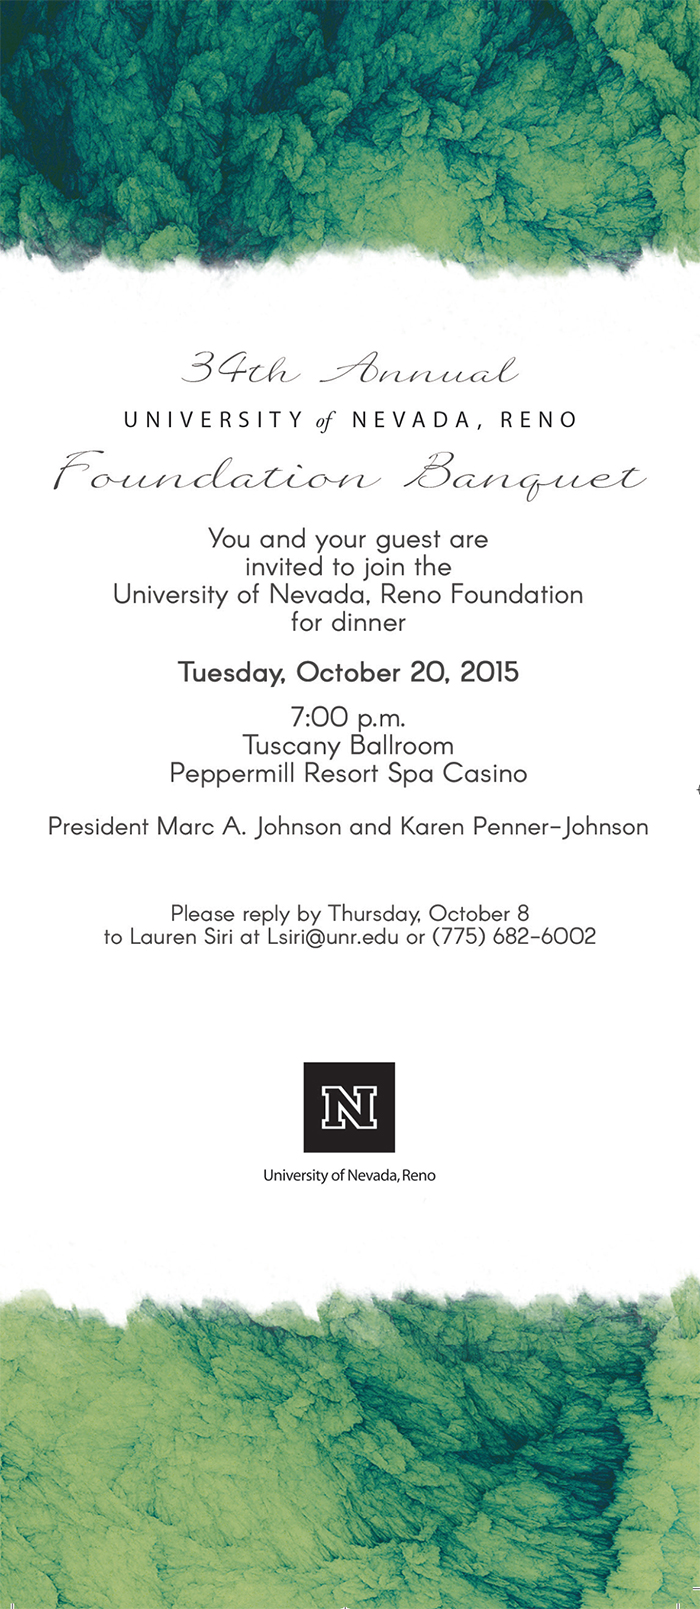 2015 Foundation Banquet invitation